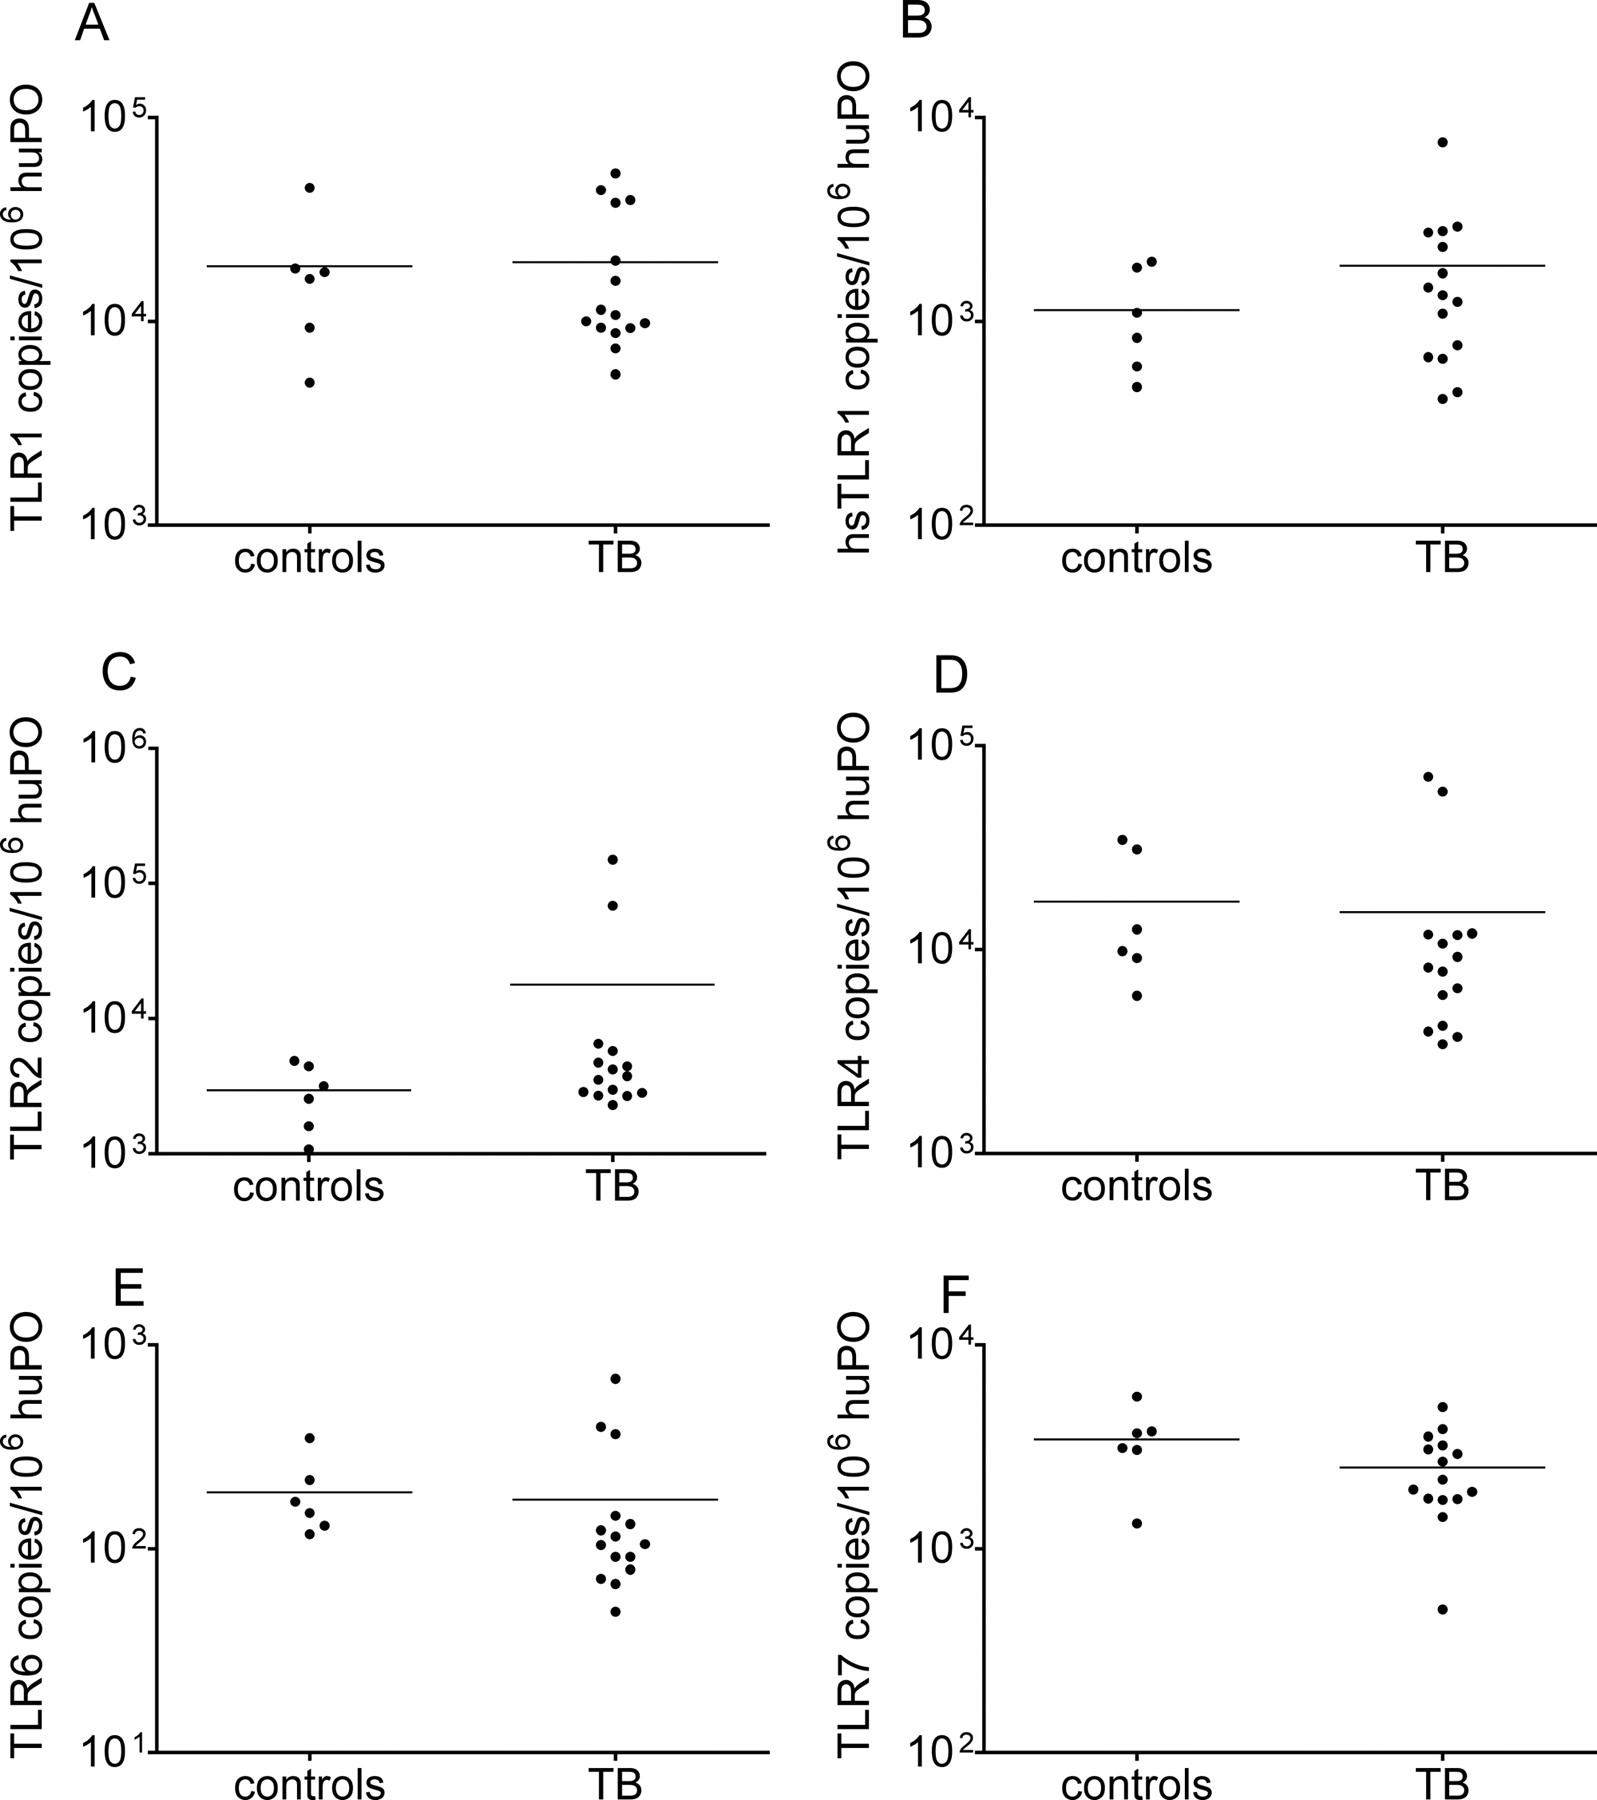 Myobacterium tuberculosis induces selective up regulation of tlrs download figure ccuart Images